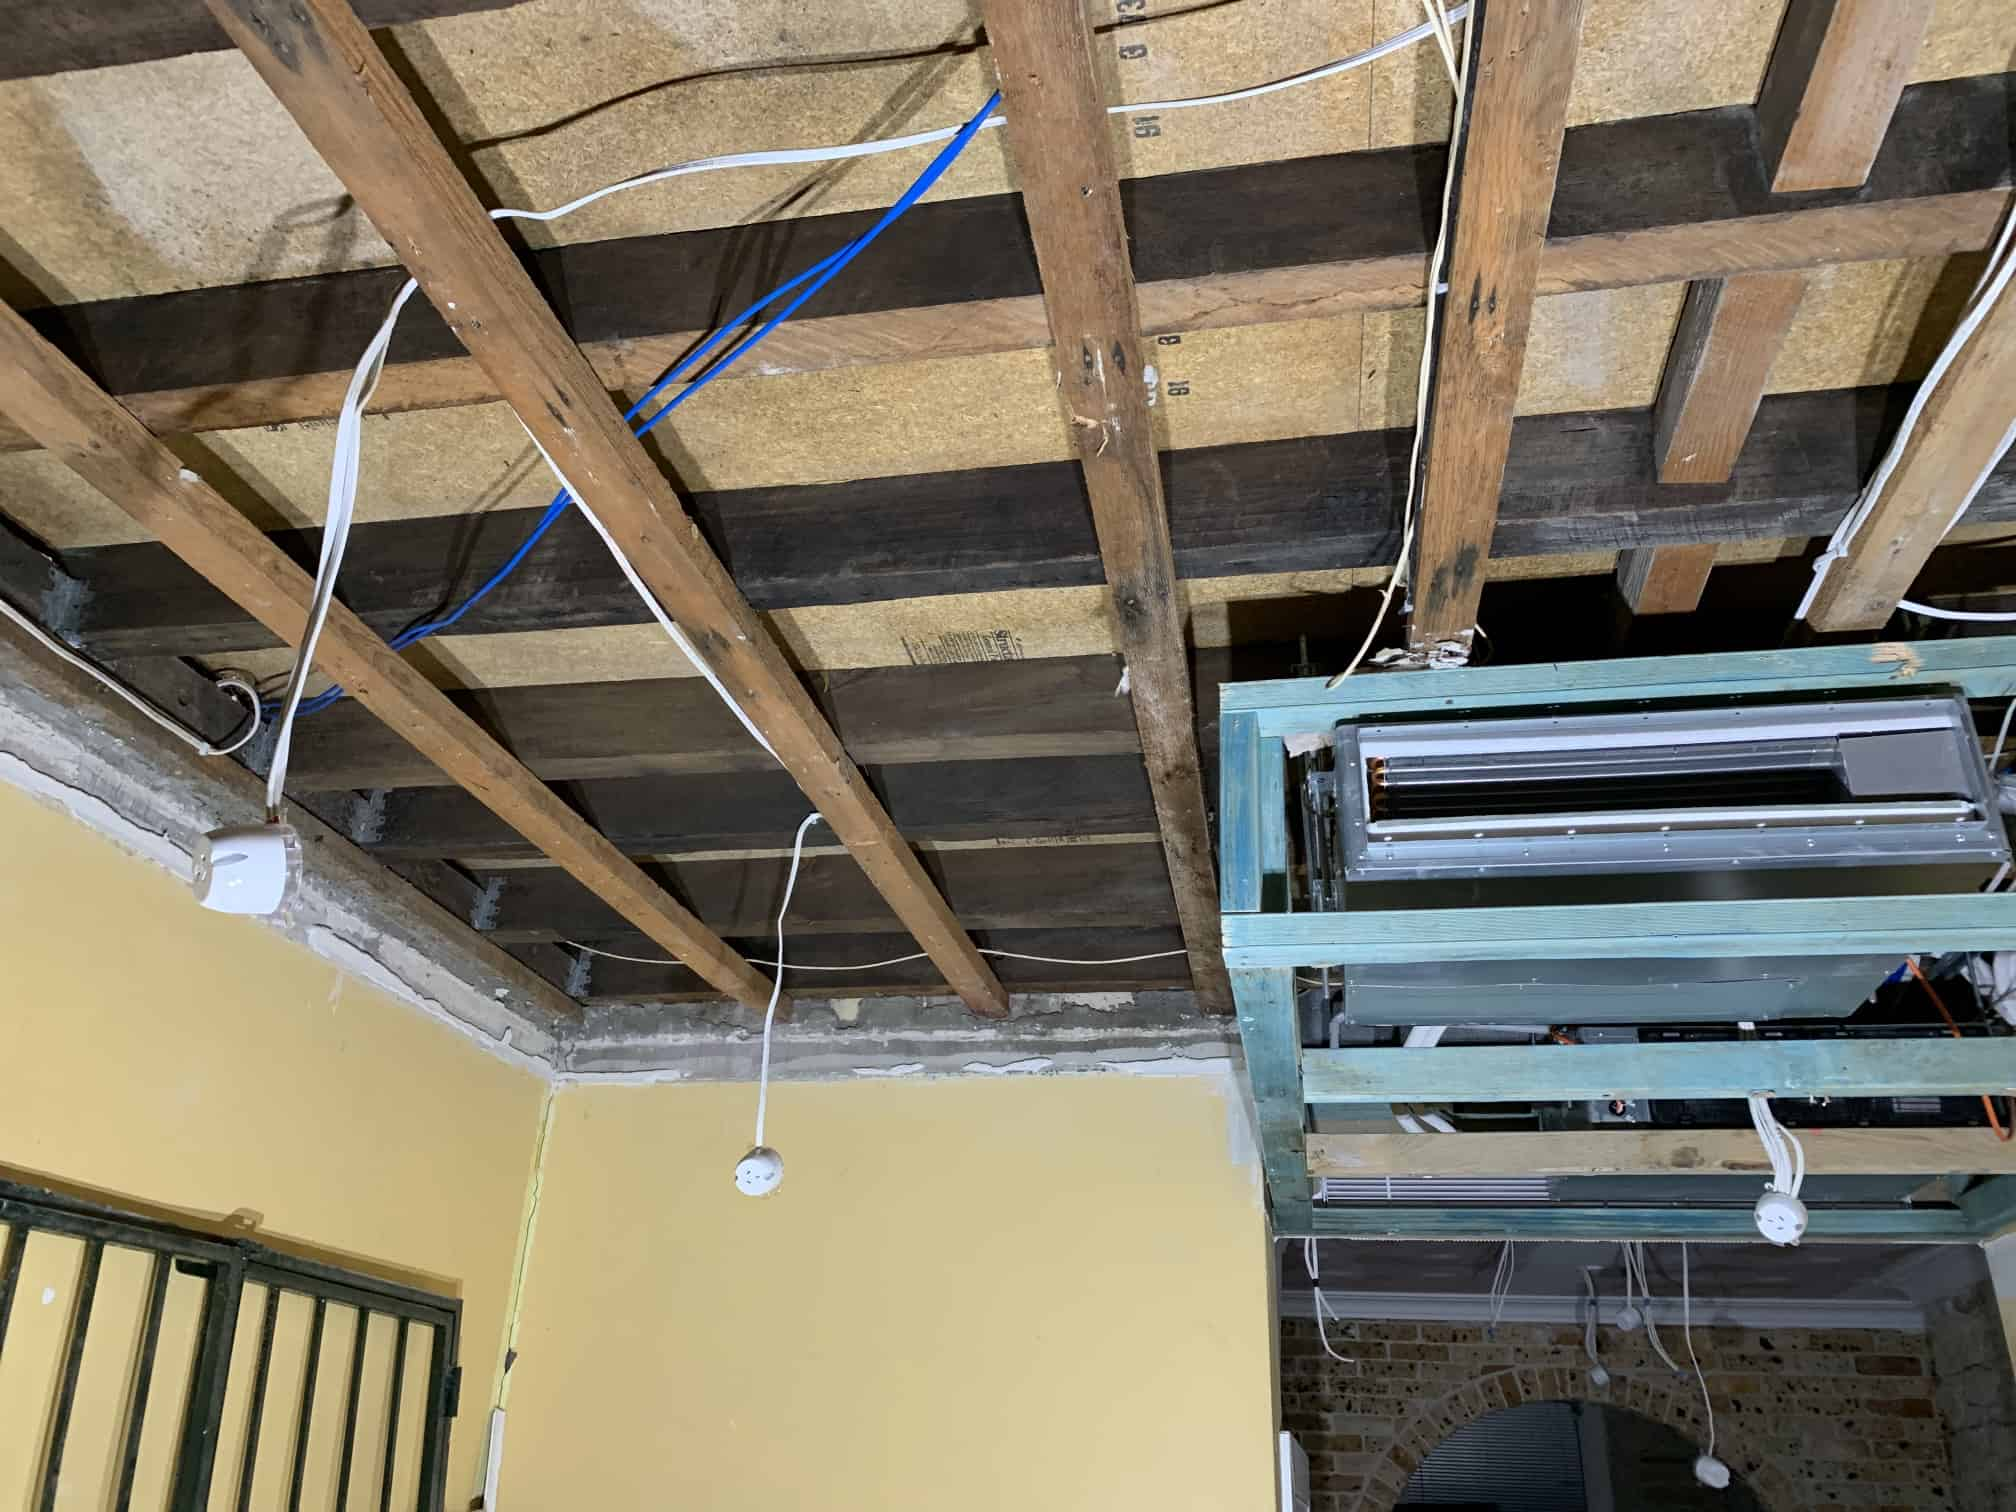 wooden ceiling with wires and cables